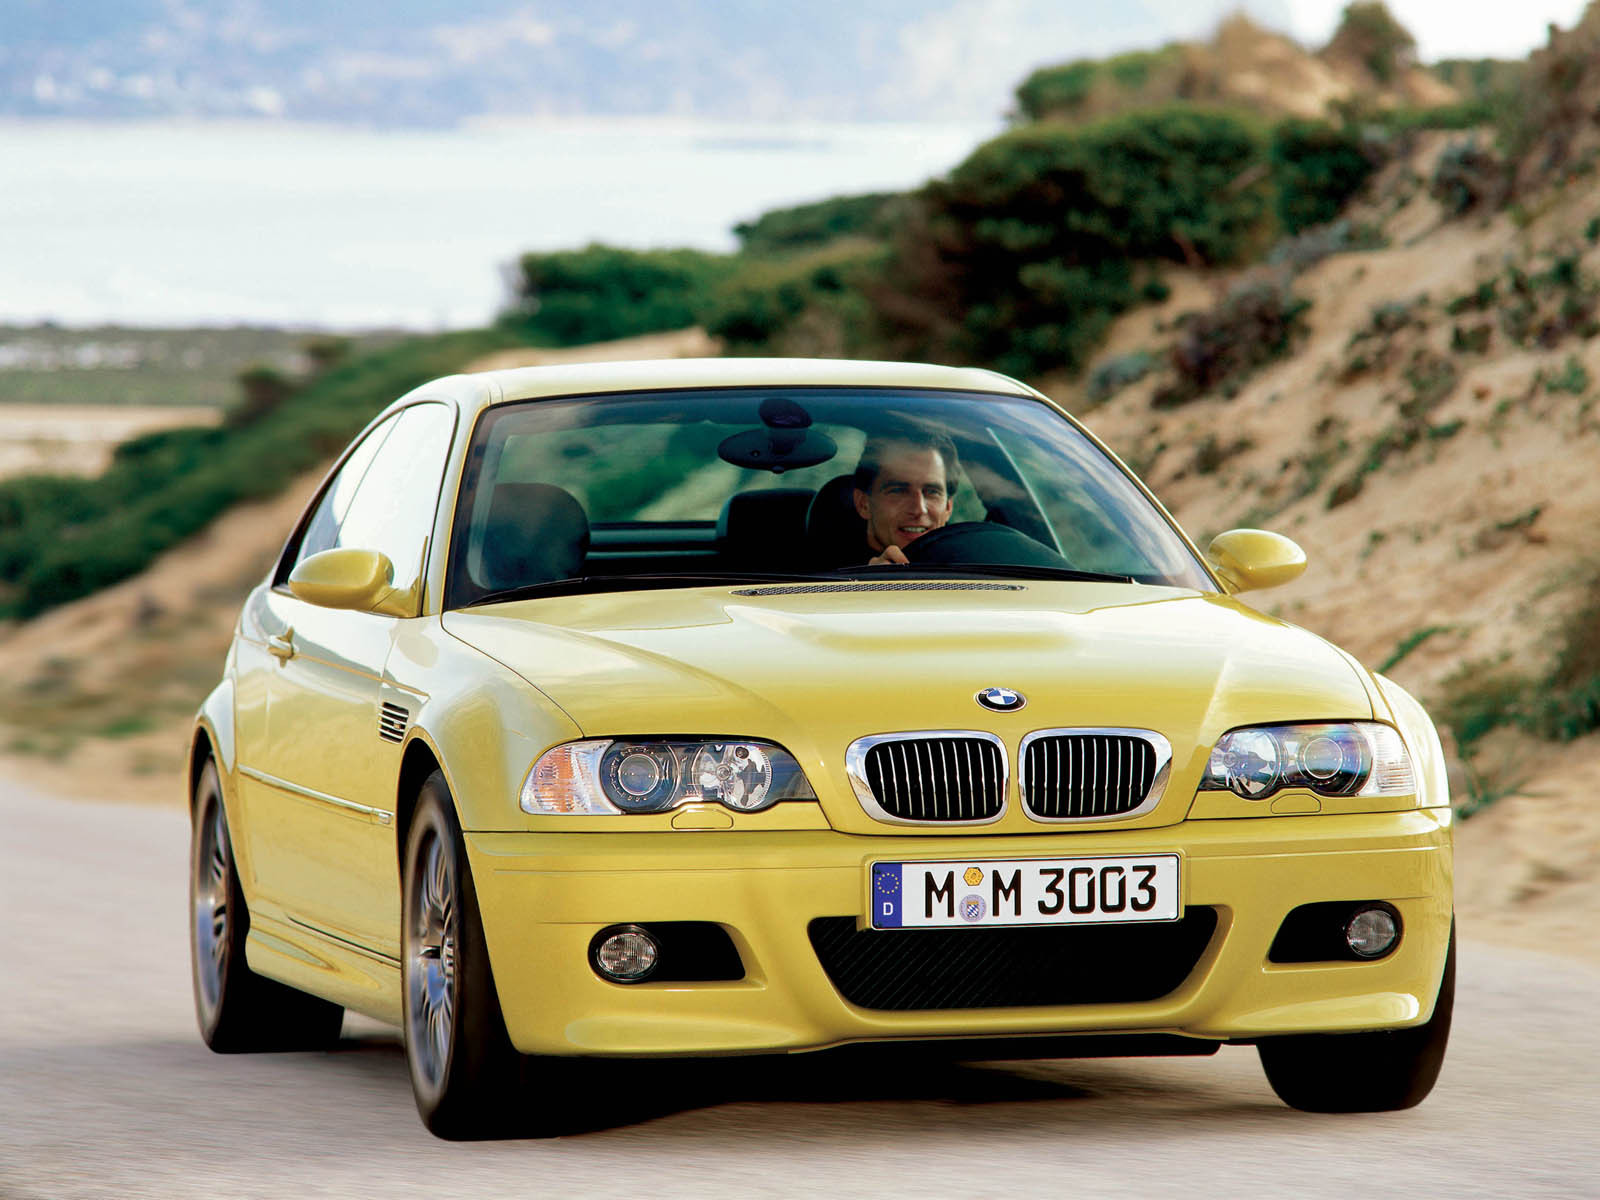 2001 2003 bmw m3 e46 pictures photos wallpapers top speed. Black Bedroom Furniture Sets. Home Design Ideas